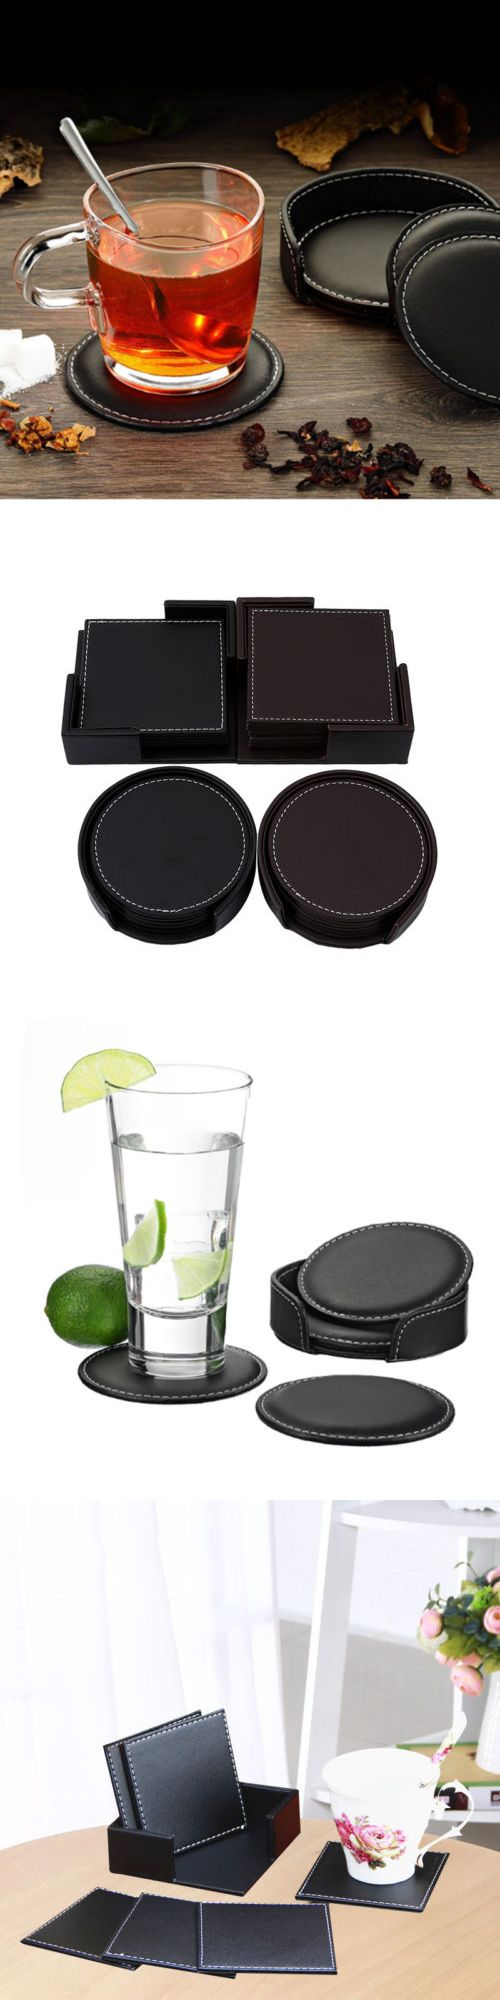 Coasters 36026 Set Of 6pcs Black Office Desk Decor Meeting Cup Mat Pu Leather Drink Coaster Buy It Now Only Office Desk Decor Desk Decor Black Desk Office